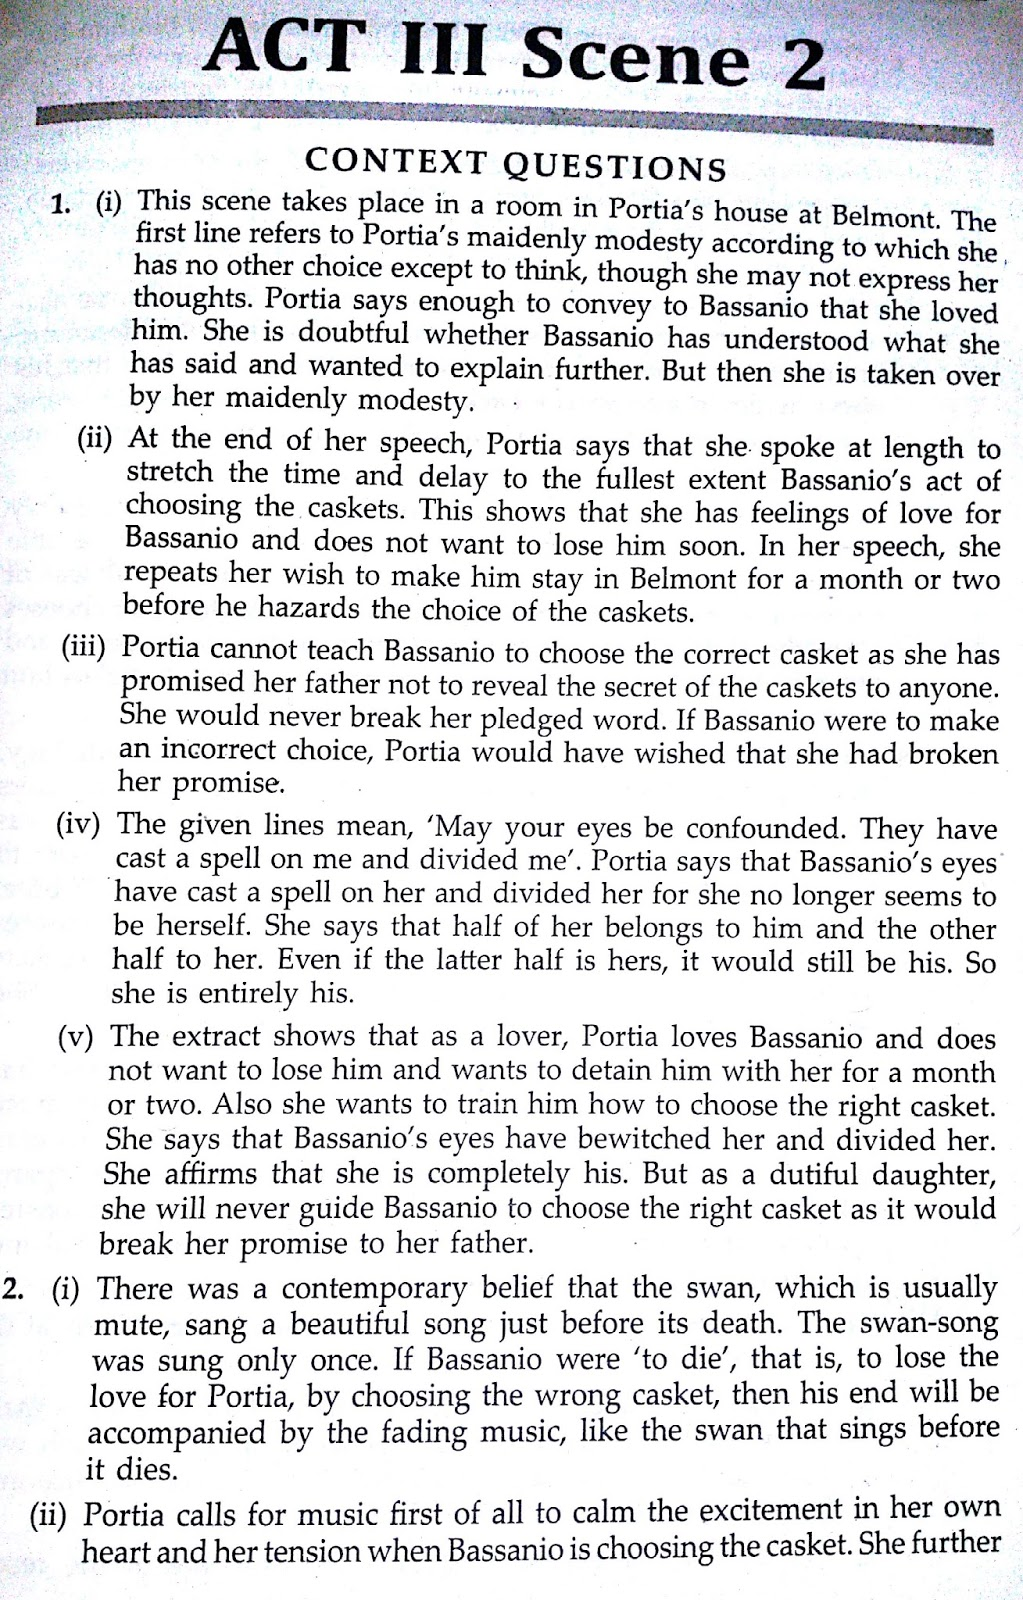 Workbook Answers/ Solutions of The Merchant of Venice, Act 3 Scene 2